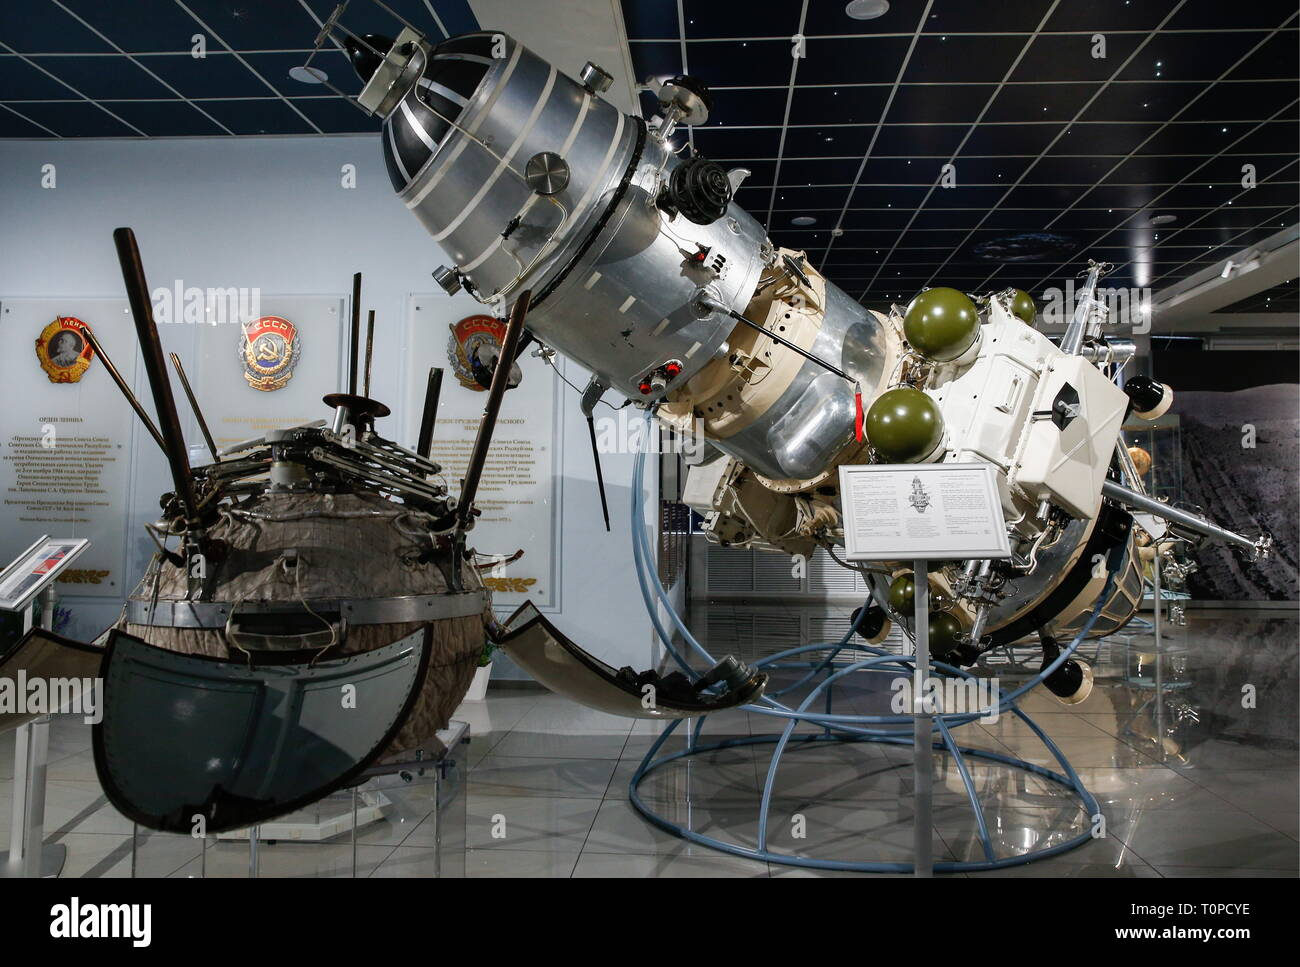 KHIMKI, MOSCOW REGION, RUSSIA – MARCH 21, 2019: Soviet Luna-13 and Luna-10 unmanned interplanetary spacecraft on display at the Lavochkin Association, a Russian aerospace company manufacturing spacecraft and 'rocket upper stages. Gavriil Grigorov/TASS - Stock Image